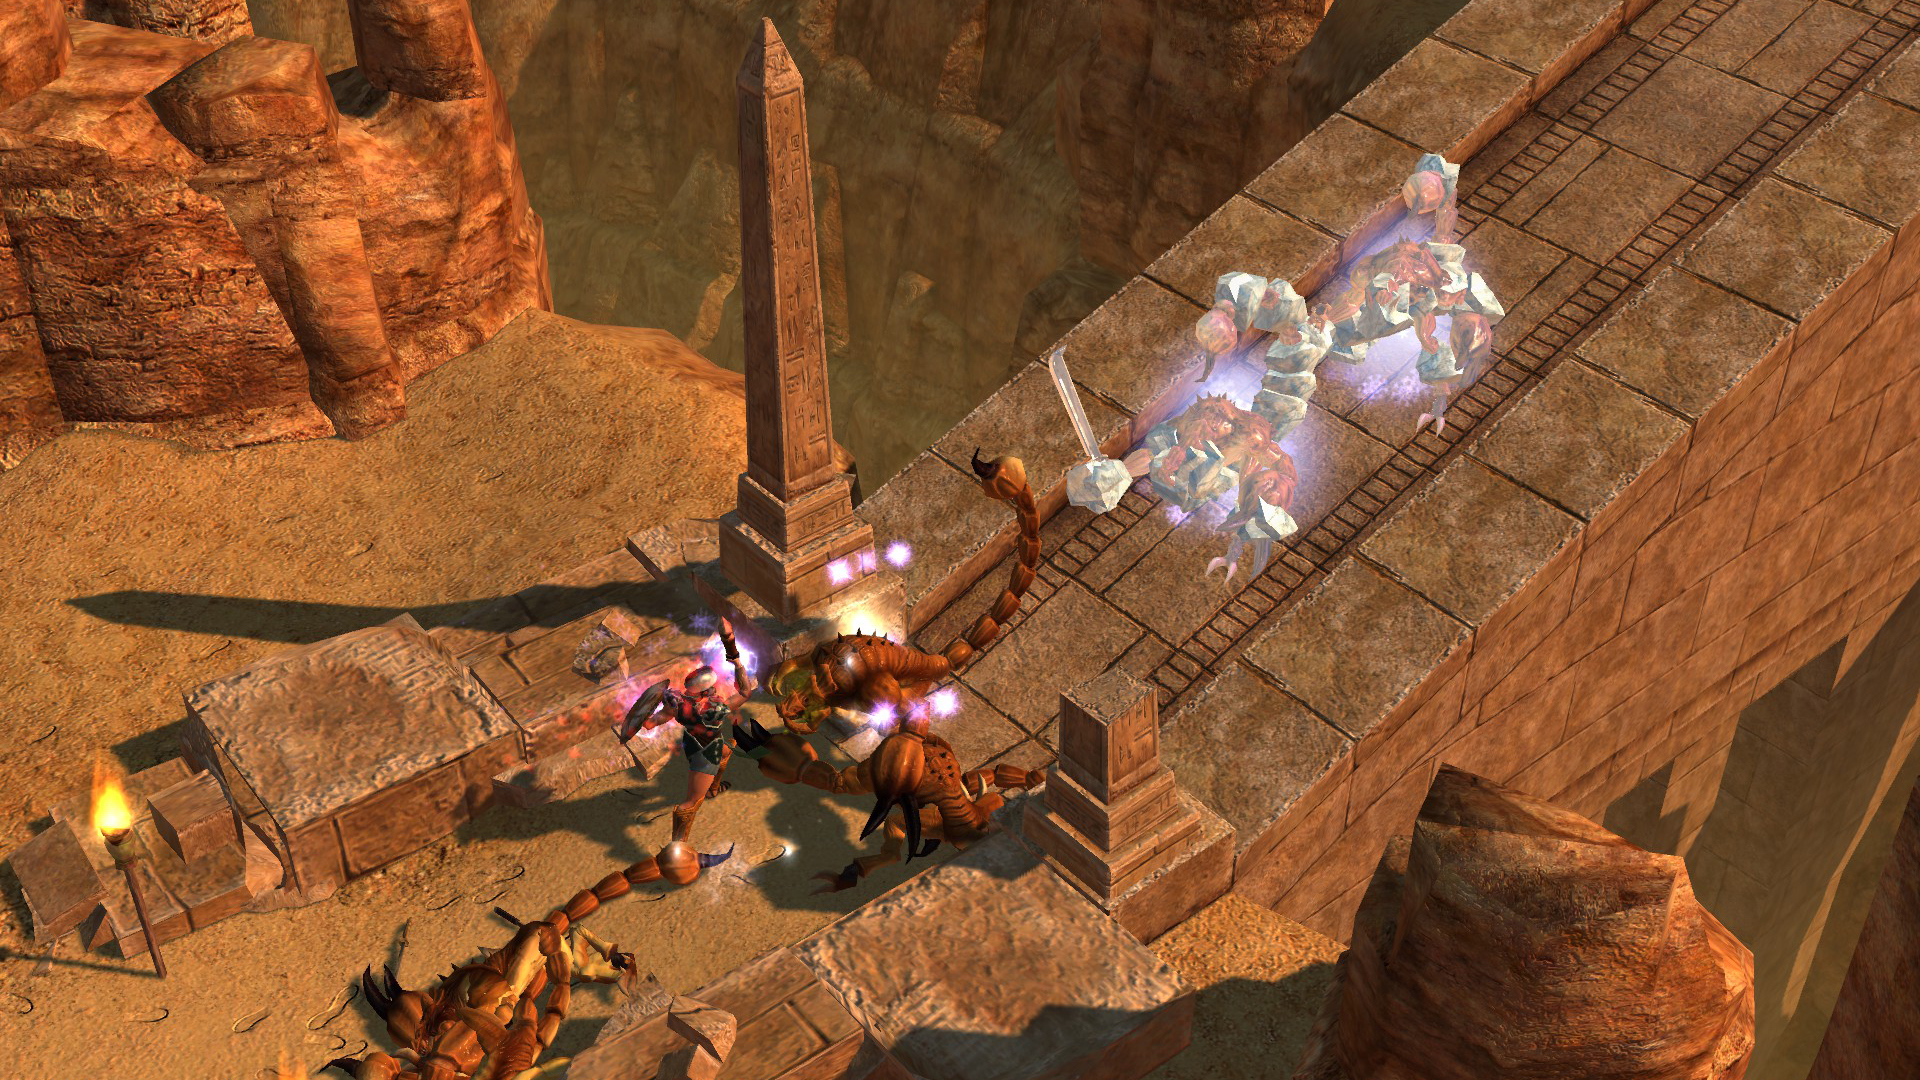 One of the best Diablo-likes and a cult classic strategy game are free on Steam